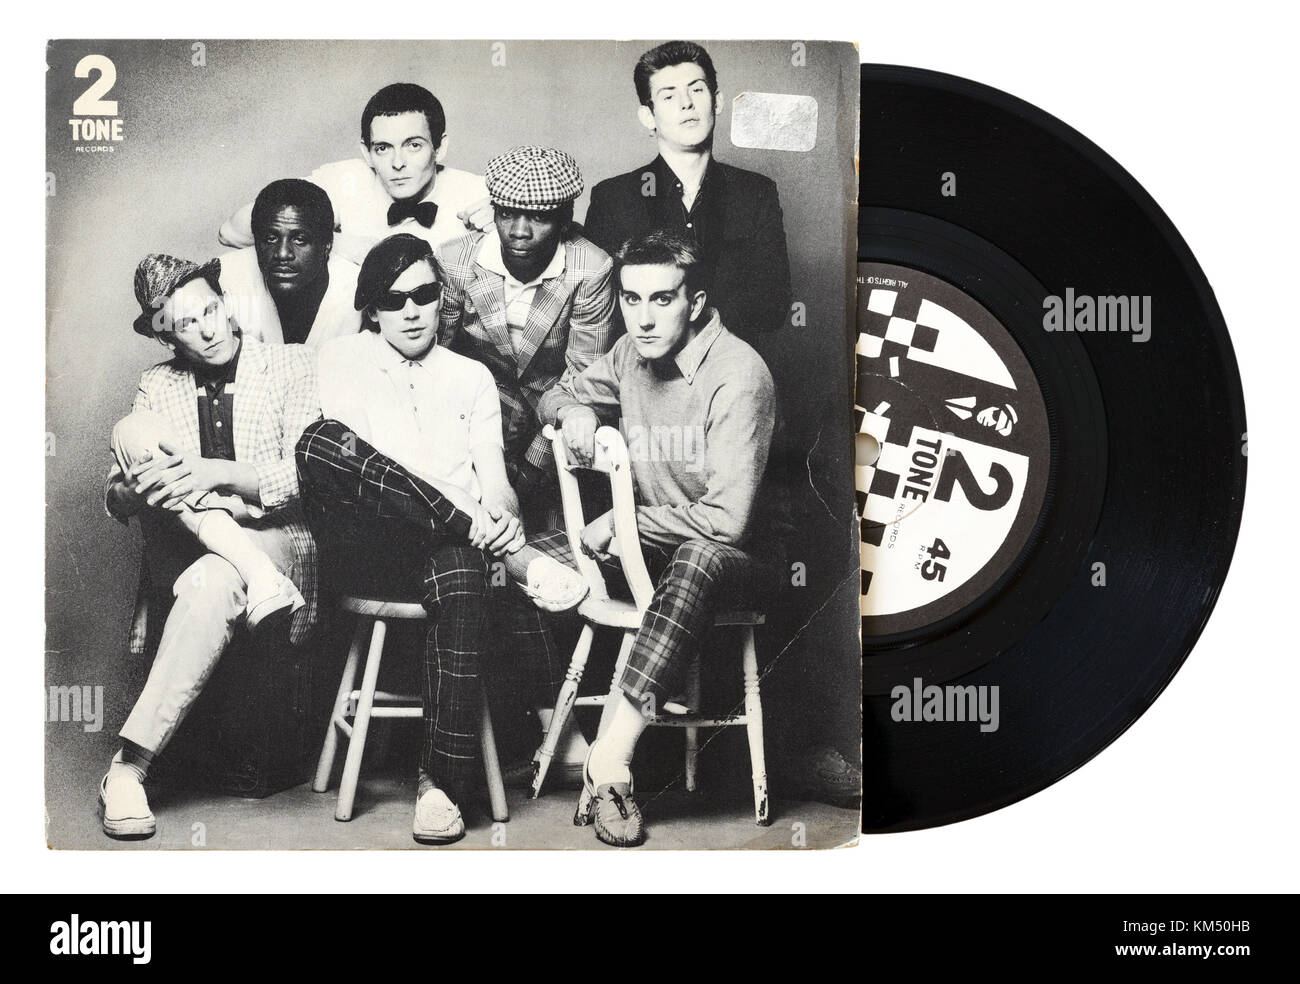 The Specials Do Nothing seven inch single - Stock Image